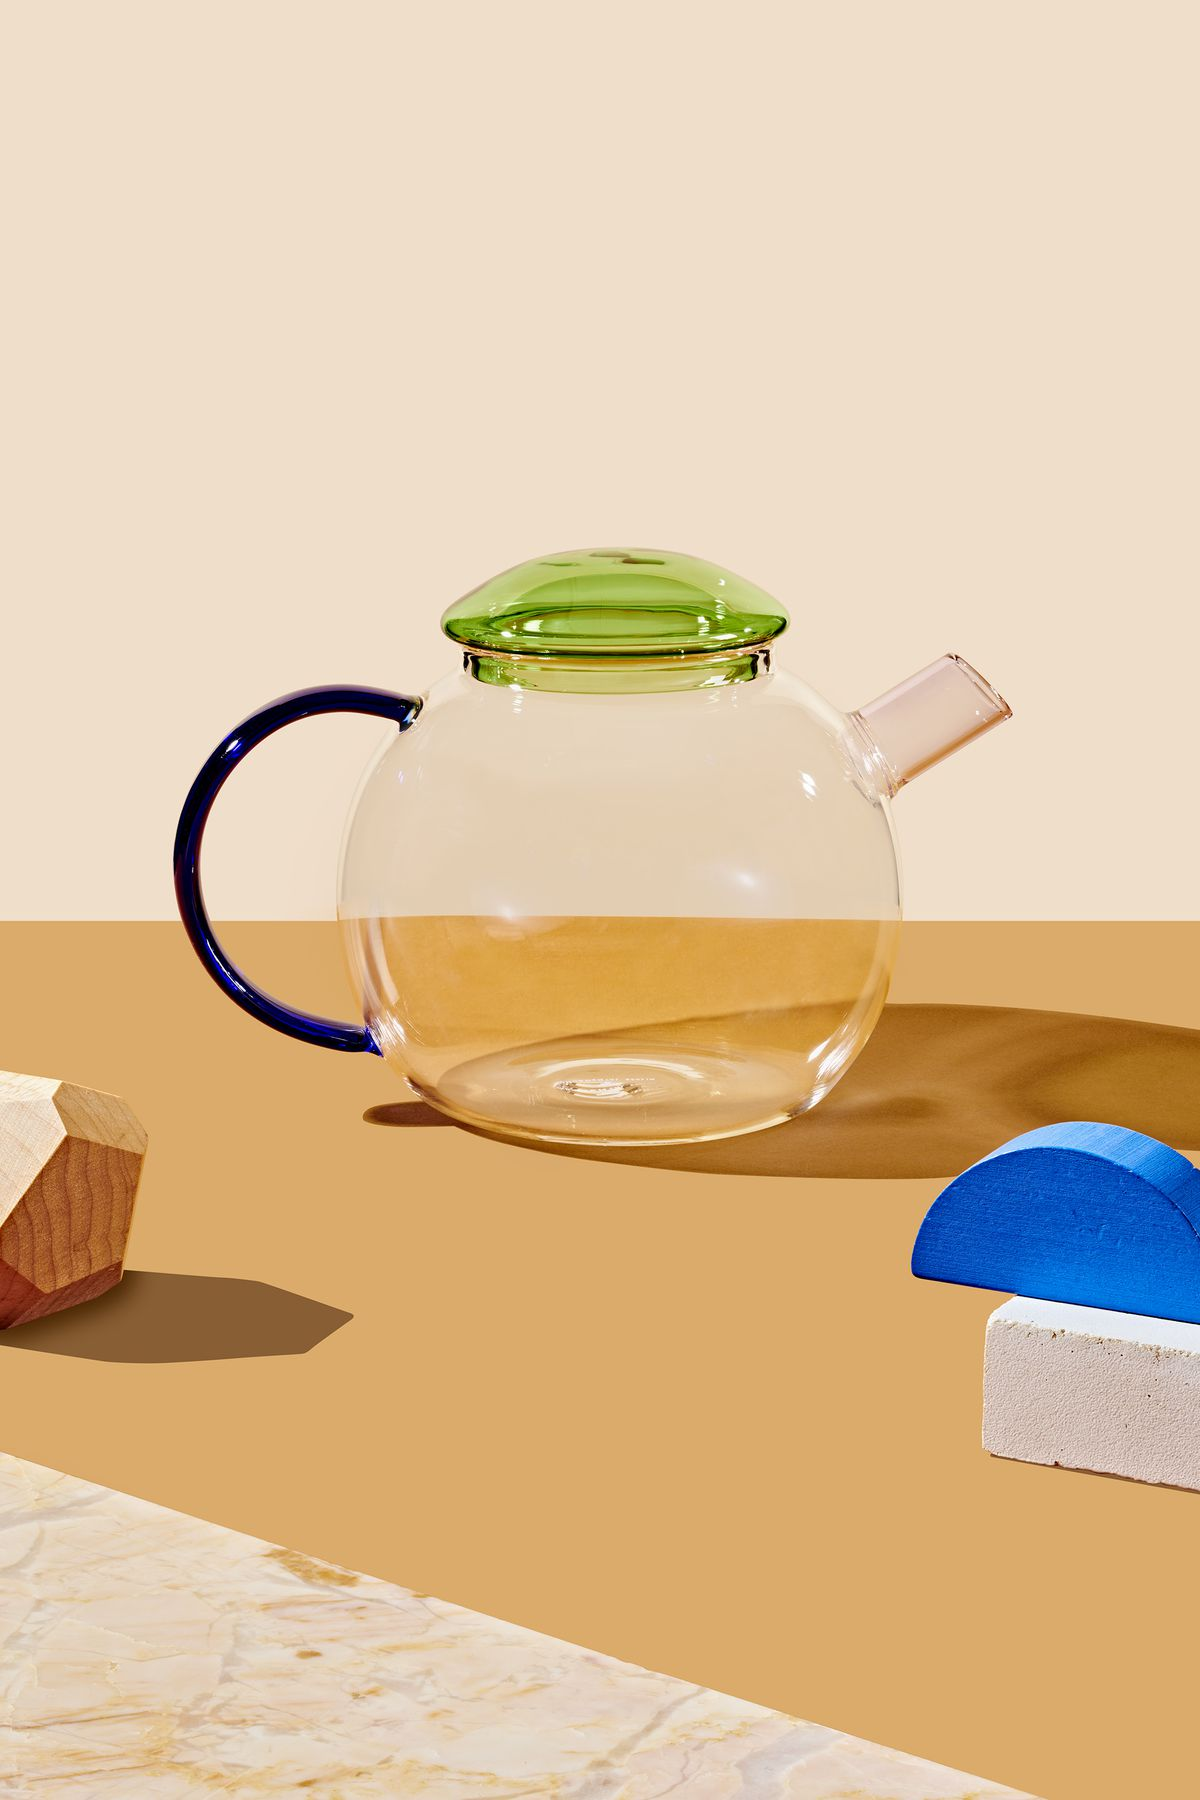 A glass teapot which is part of the 2019 Curbed Holiday Gift Guide. The tea pot has a green lid, blue handle and a pink spout. There are various art objects arranged around the teapot on an orange surface.